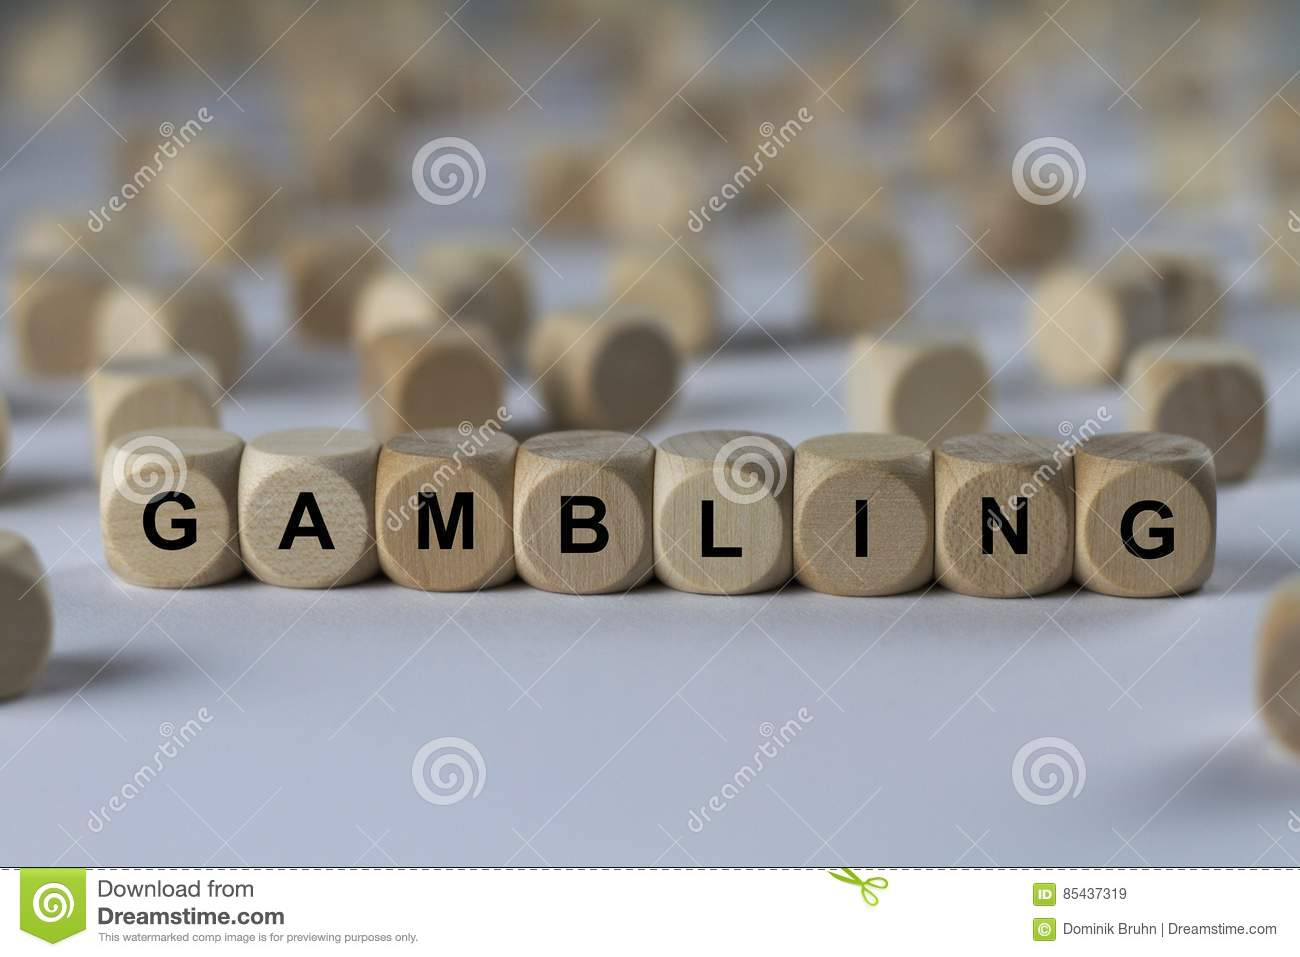 Gambling - cube with letters, sign with wooden cubes